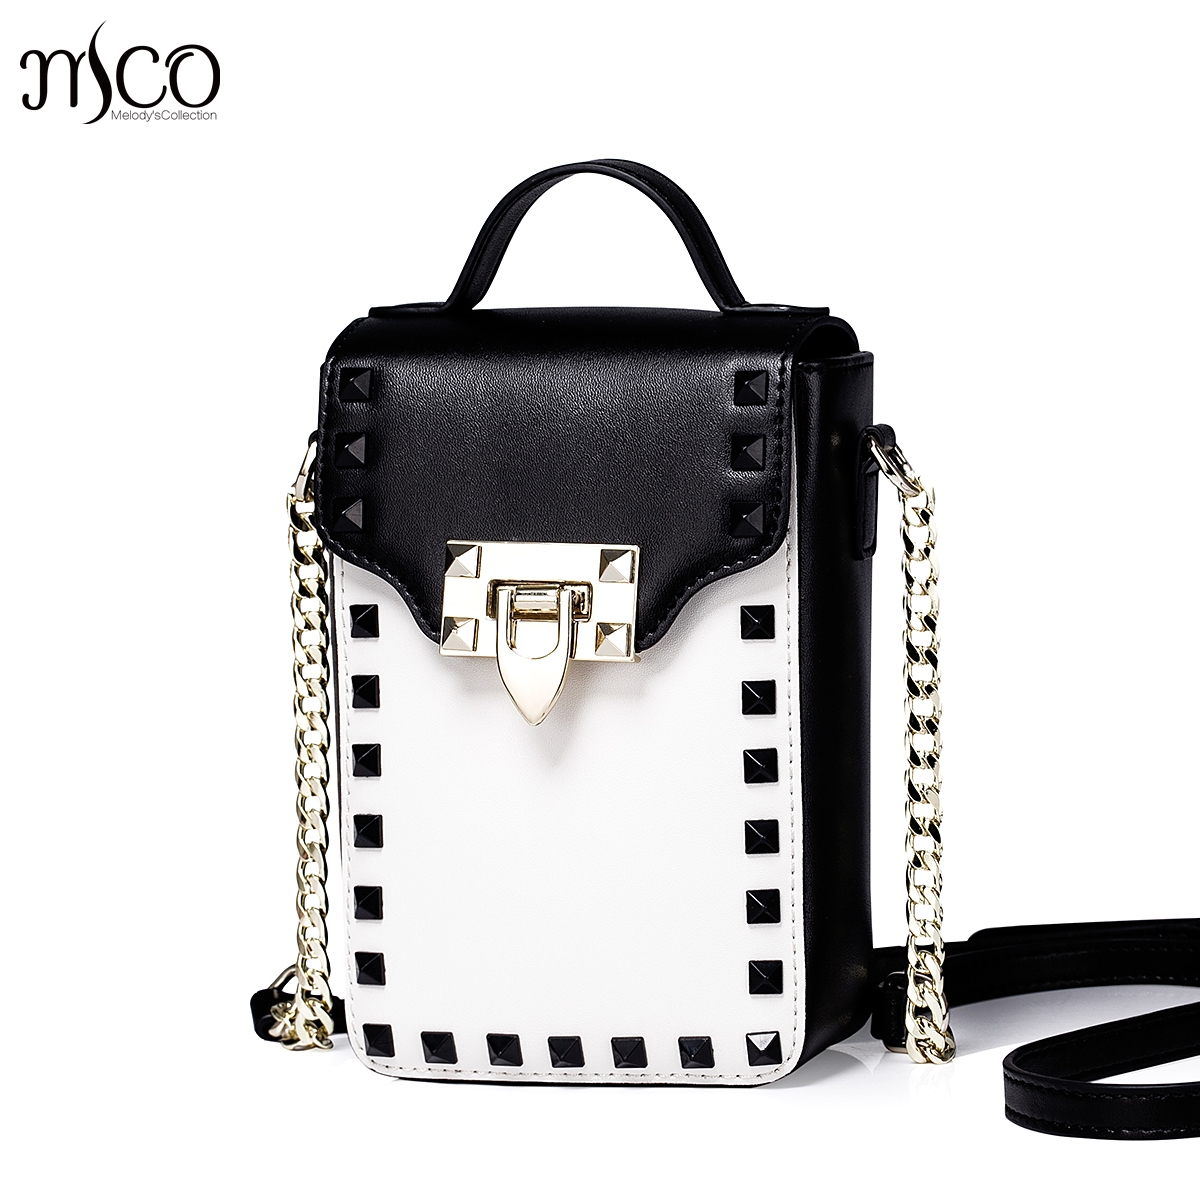 New 2016 Women's Studded Cowhide Leather Chain Vertical Small Shoulder Bag Cross Body Phone Purse Mini Crossbody Messenger Bag wenger mini vertical boarding bag 1826 66